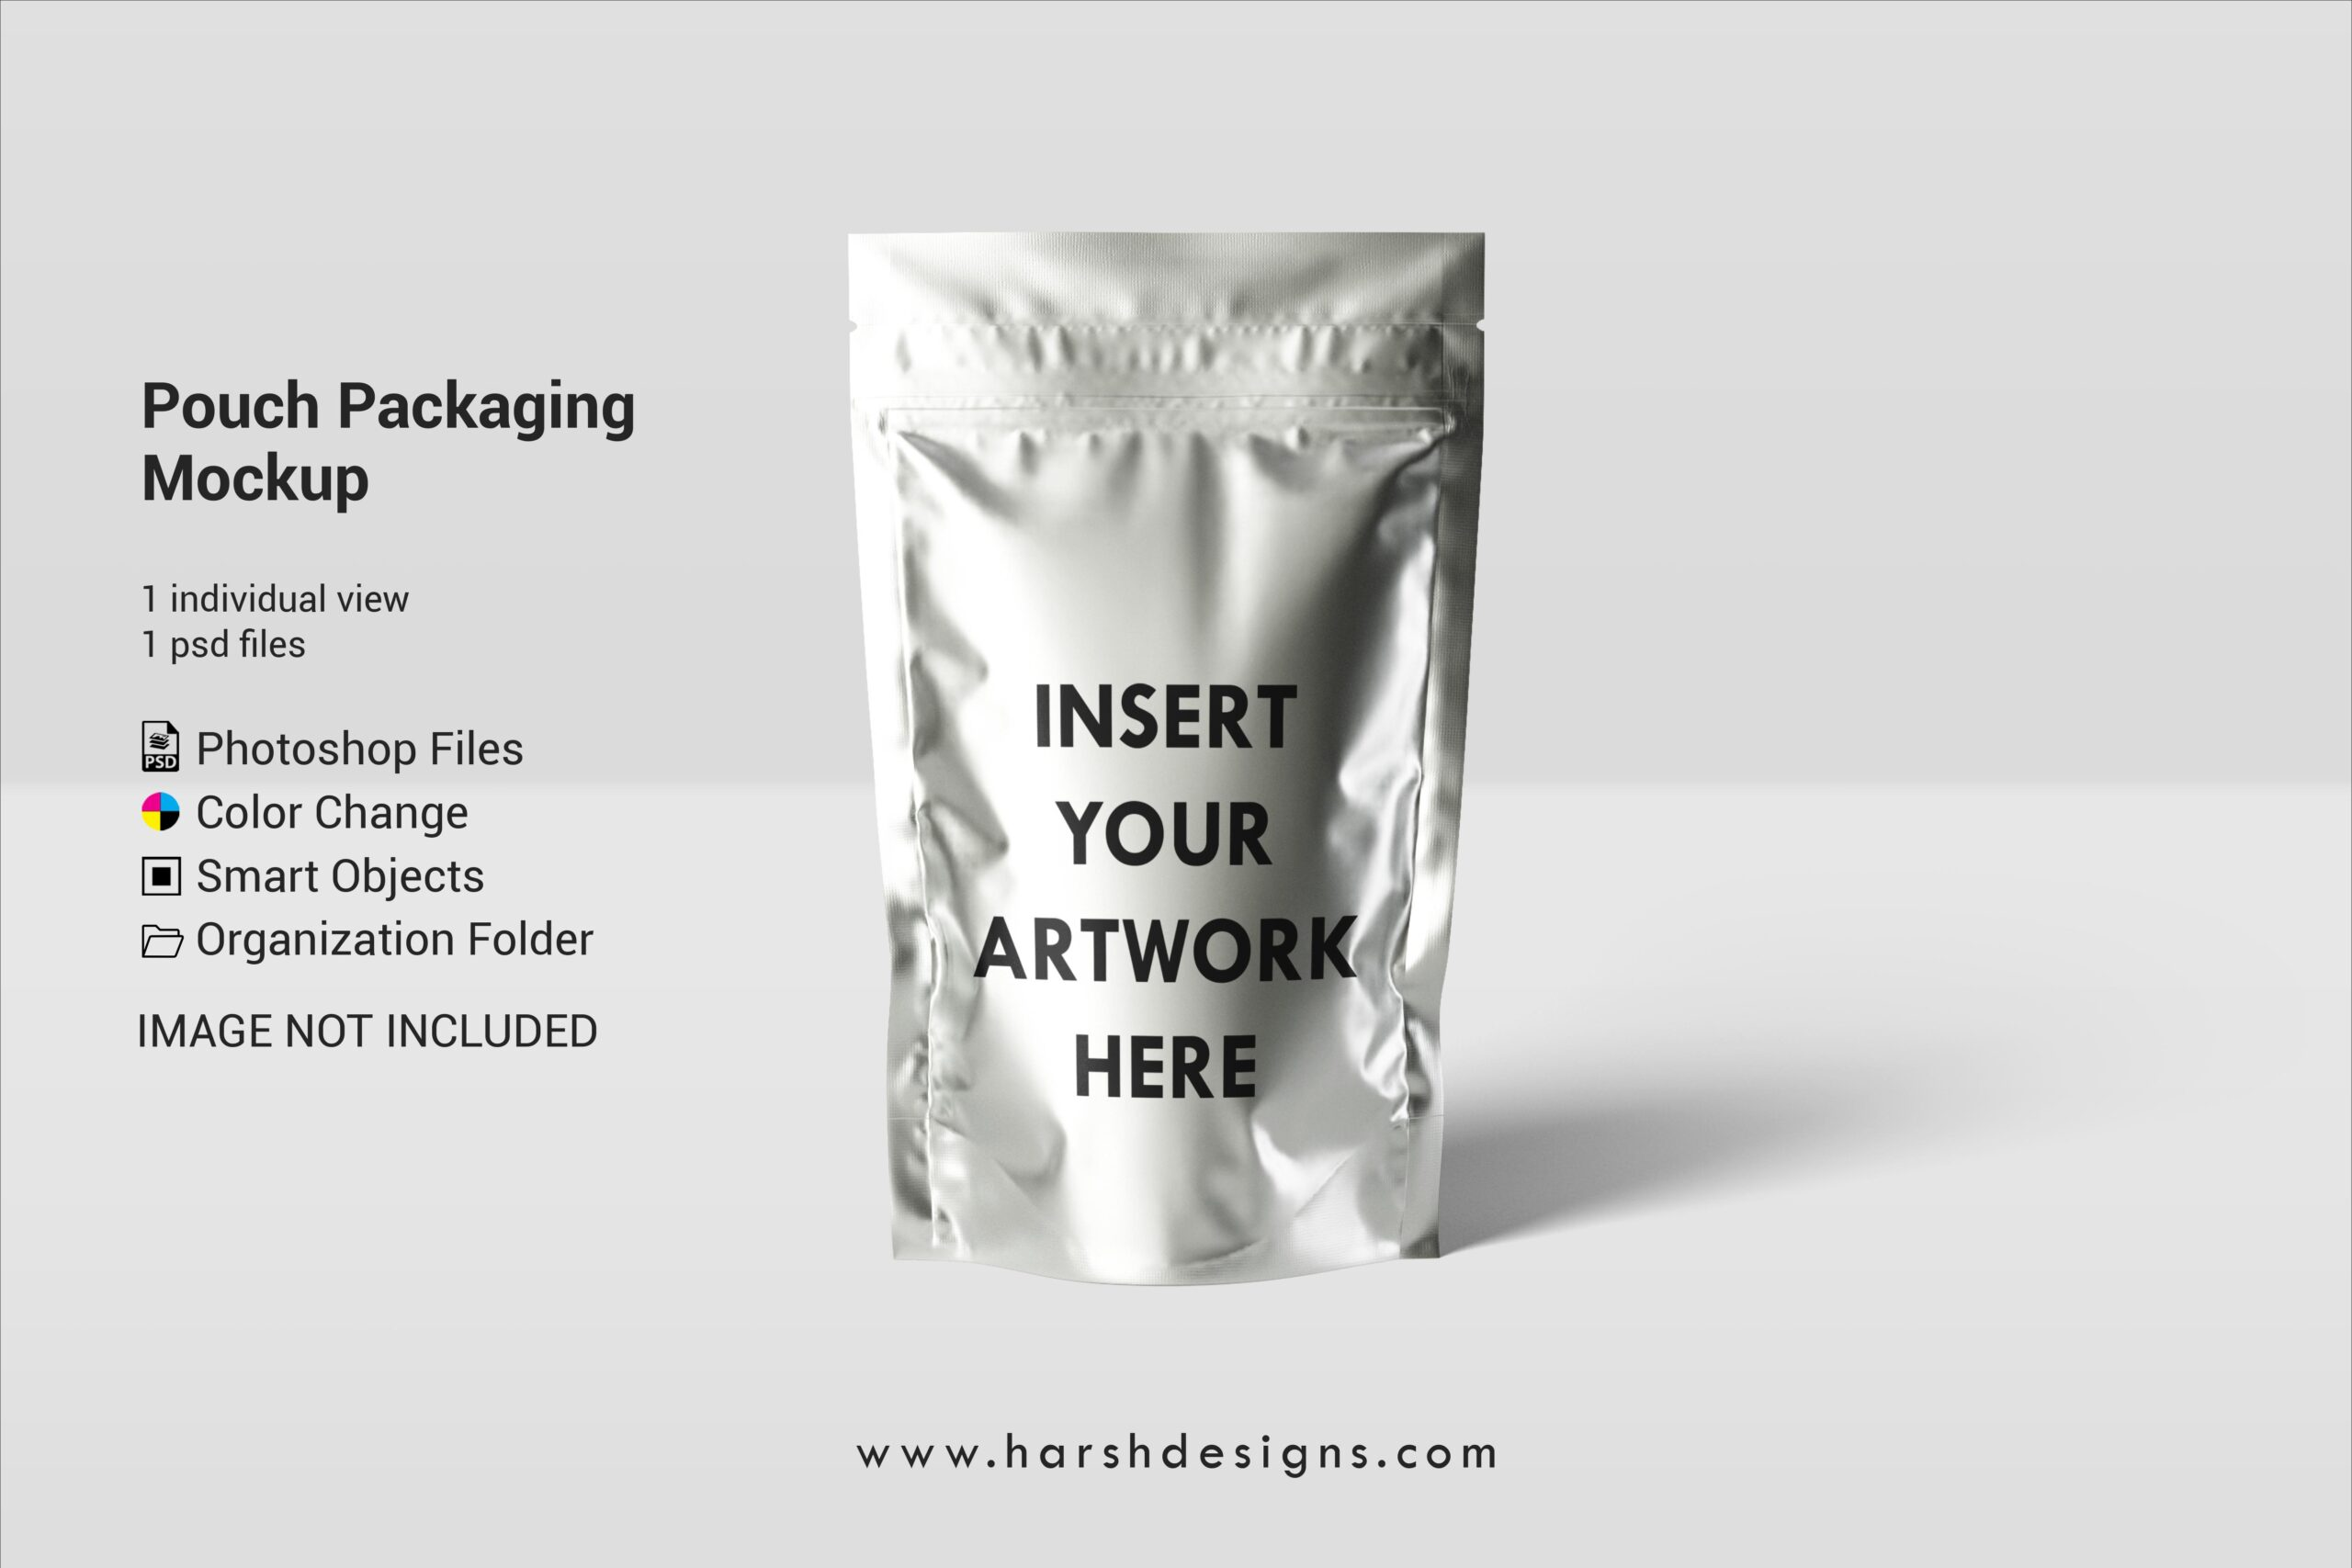 Harsh Designs Pouch Packaging PSD Mockup Packaging Branding Mockups scaled